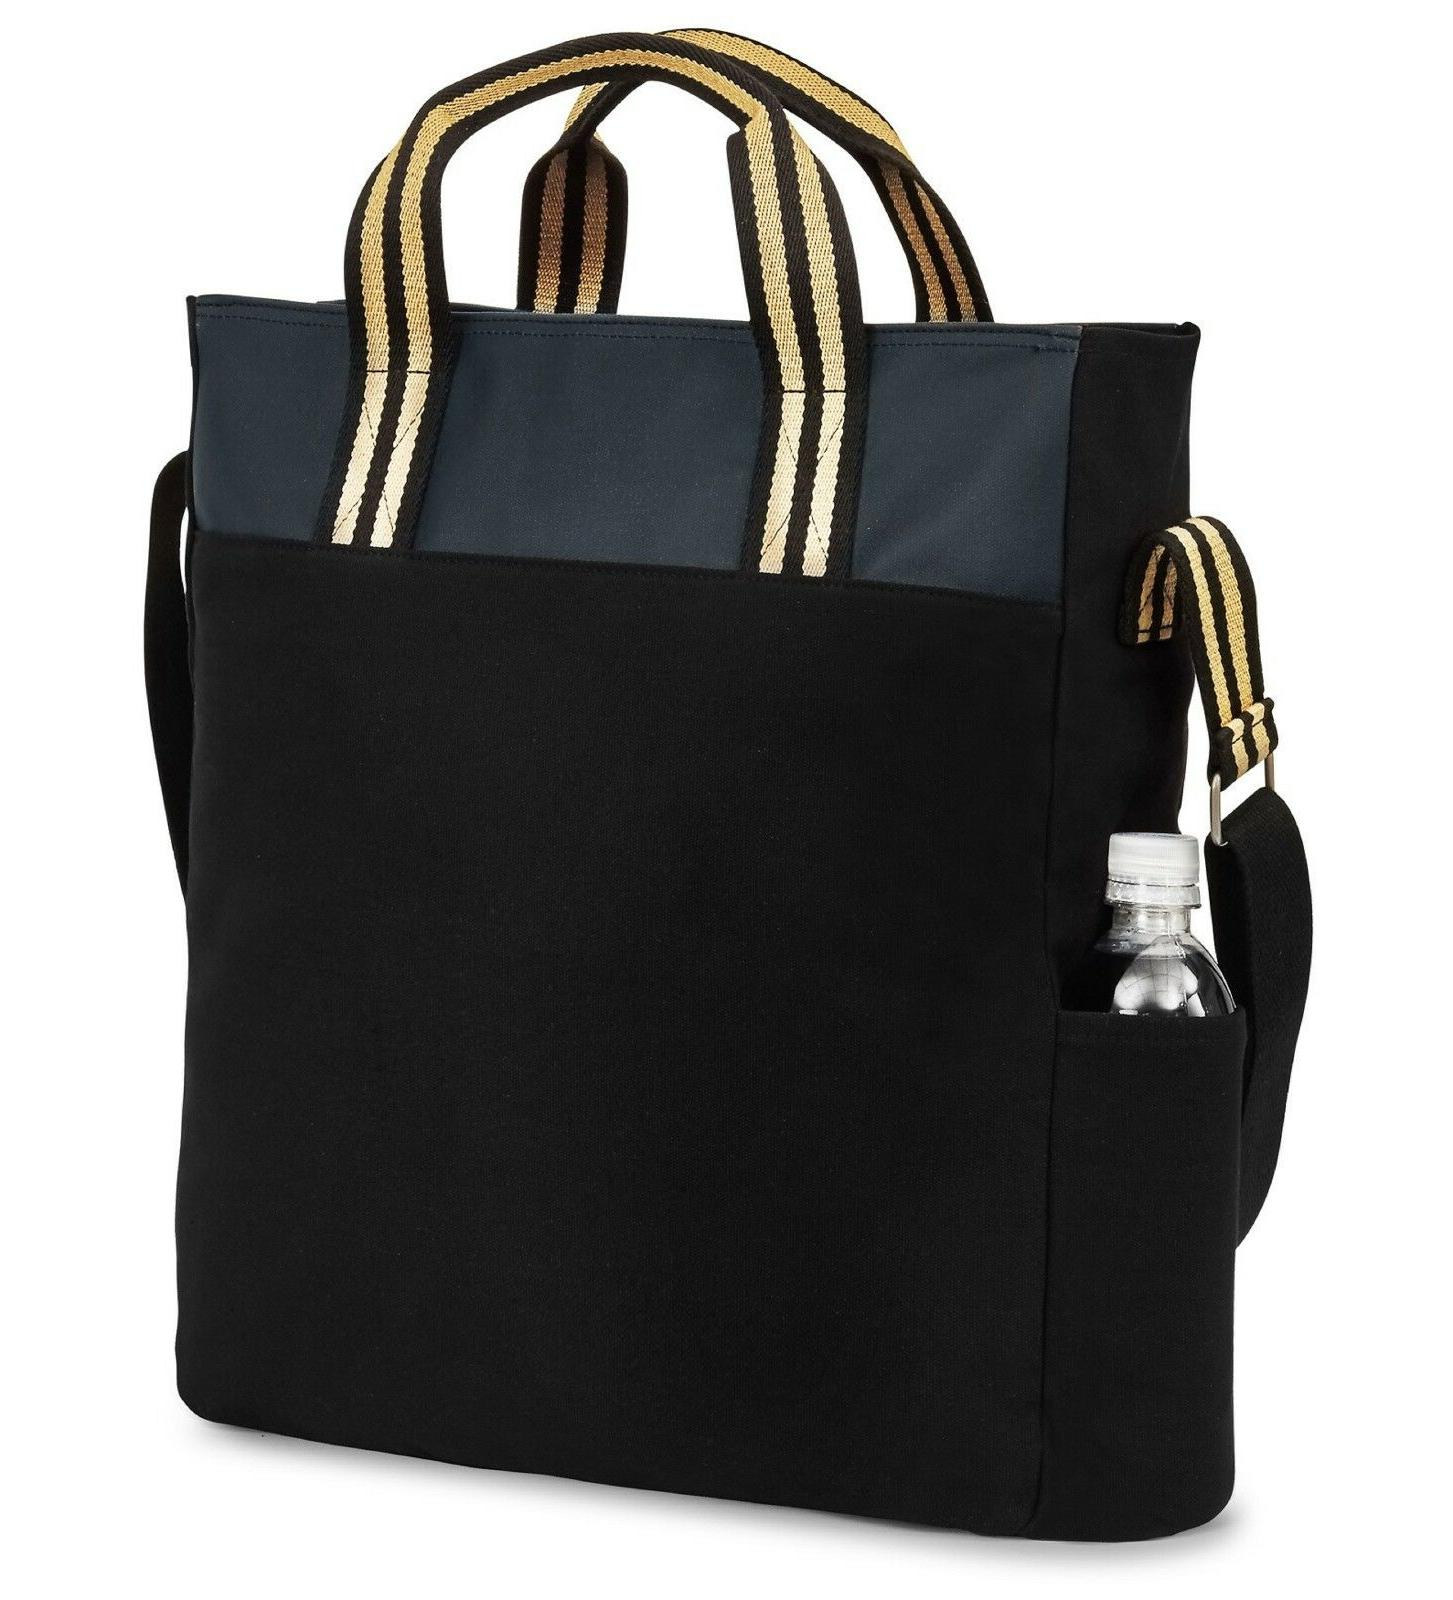 Gemline Charlie Cotton Tote Classic Cotton Tote Bag With Mod